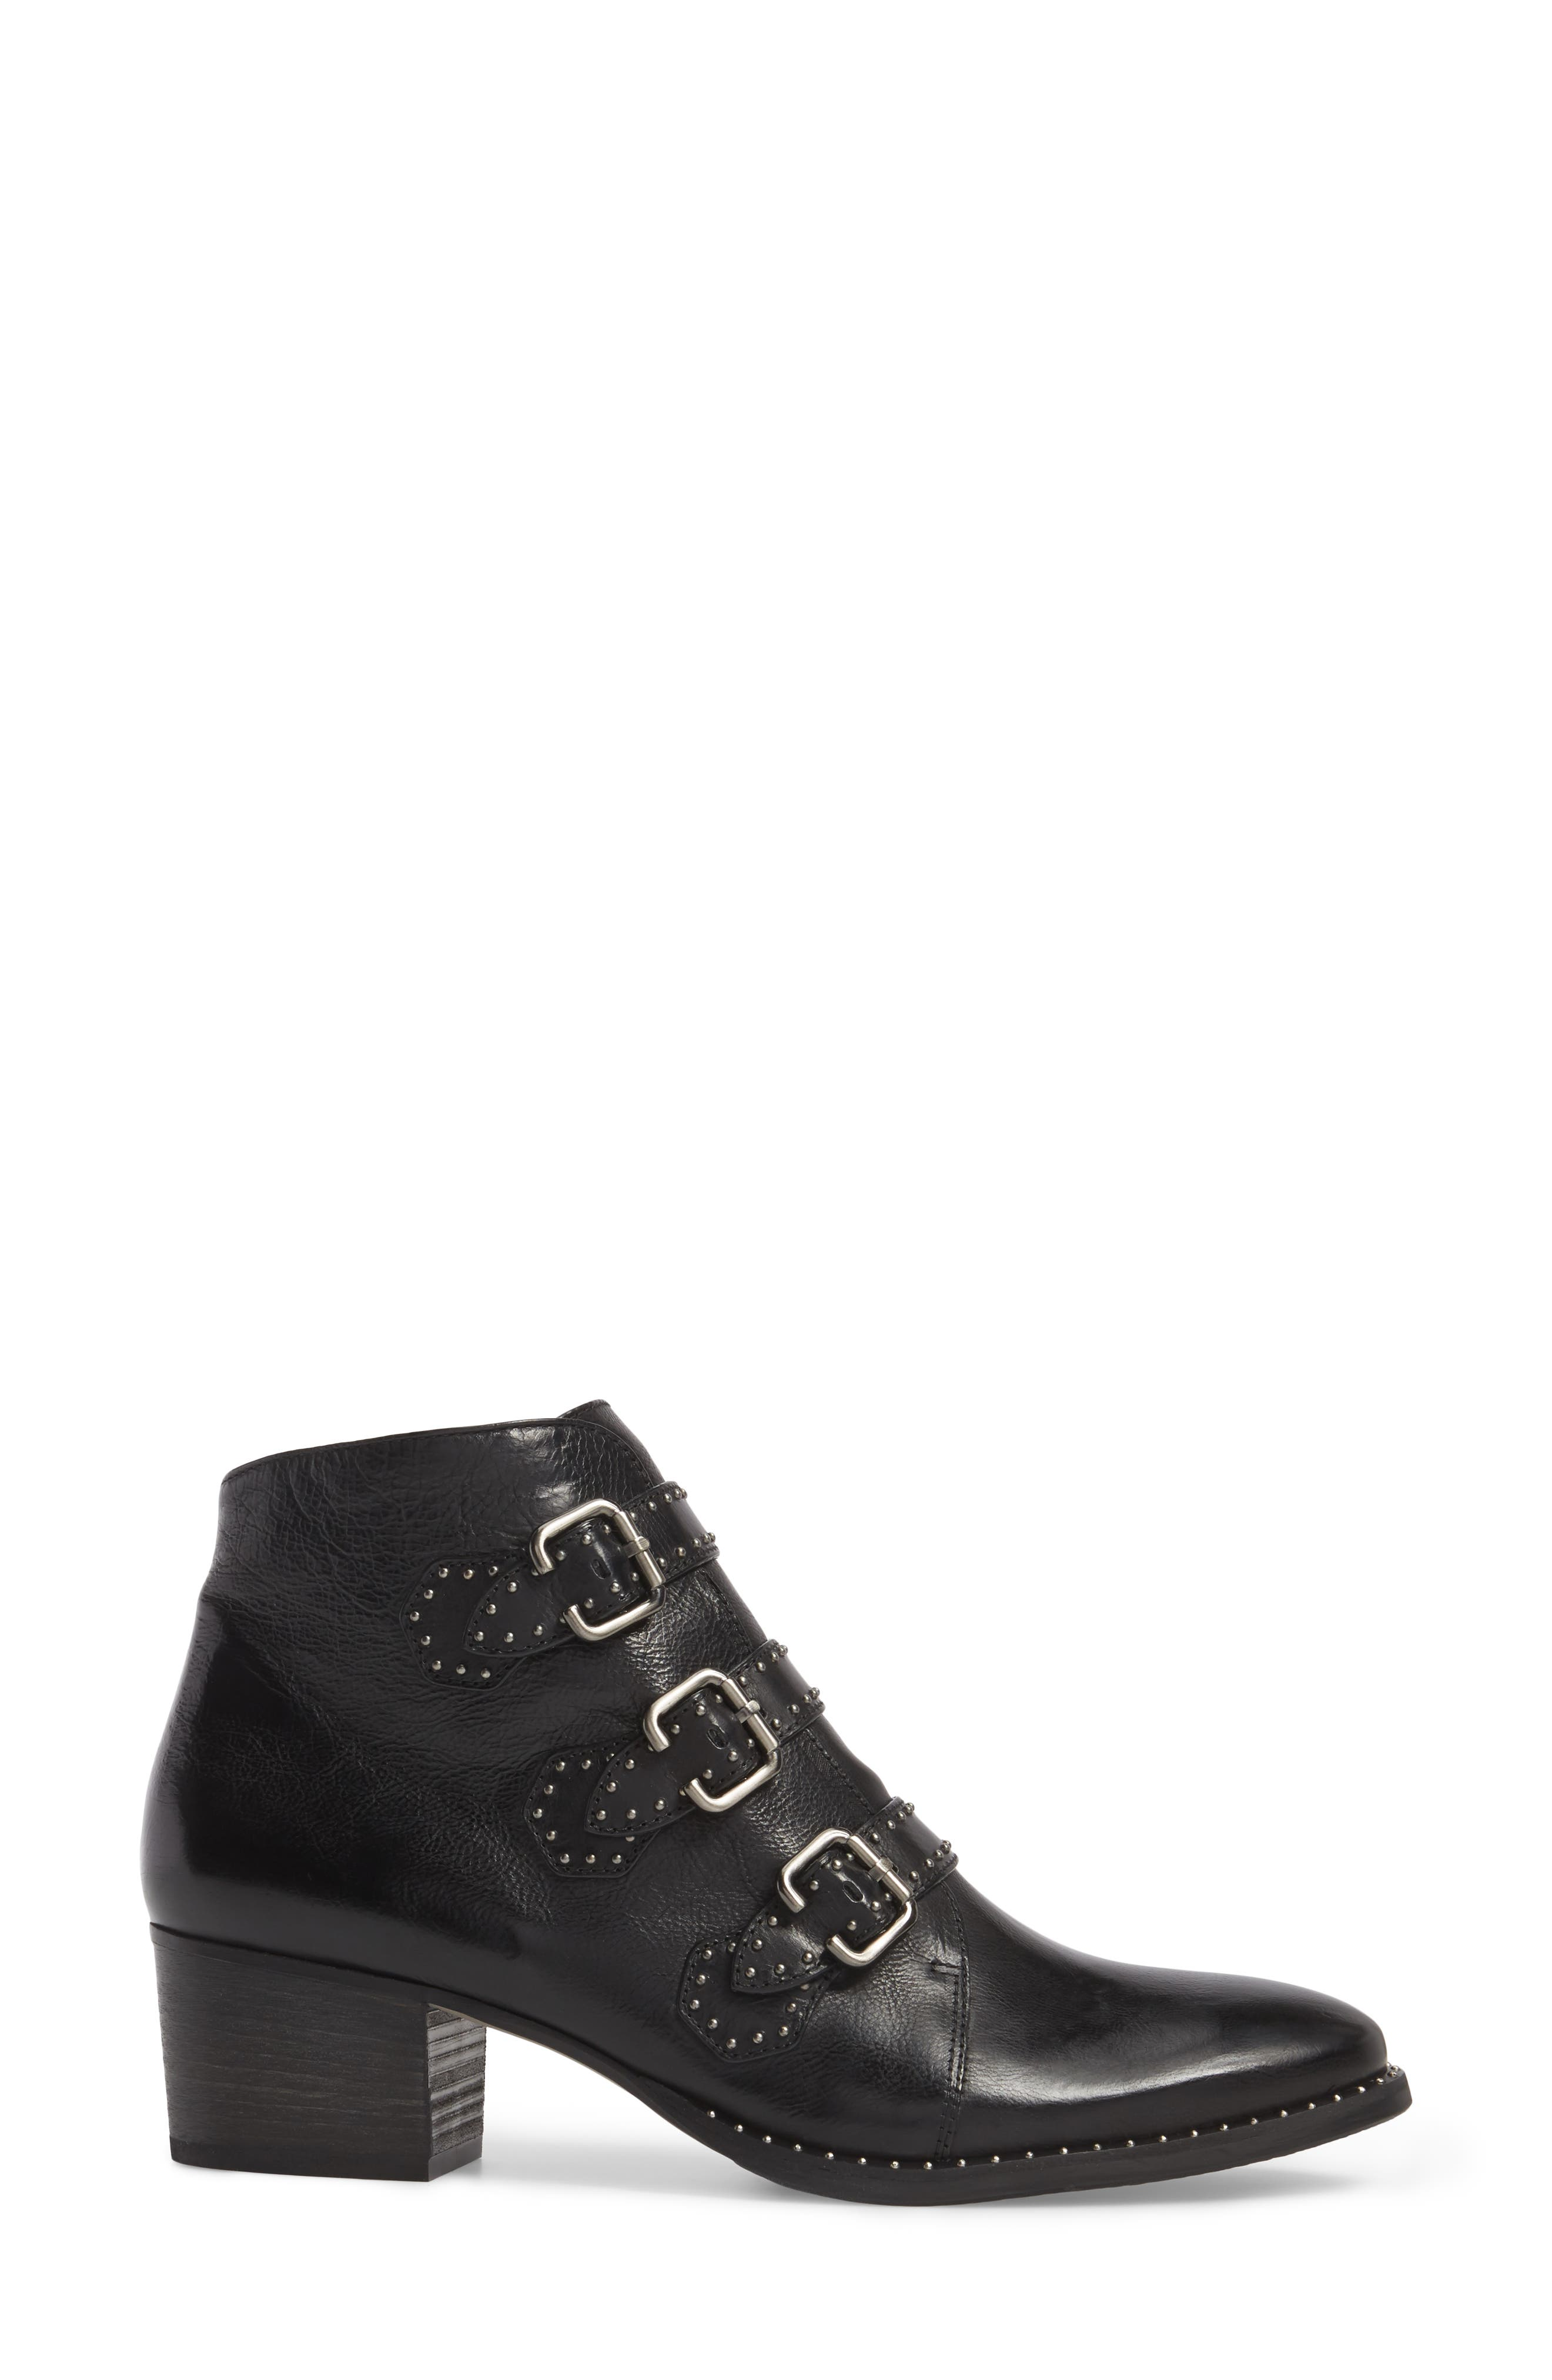 Soho Bootie,                             Alternate thumbnail 3, color,                             BLACK LEATHER